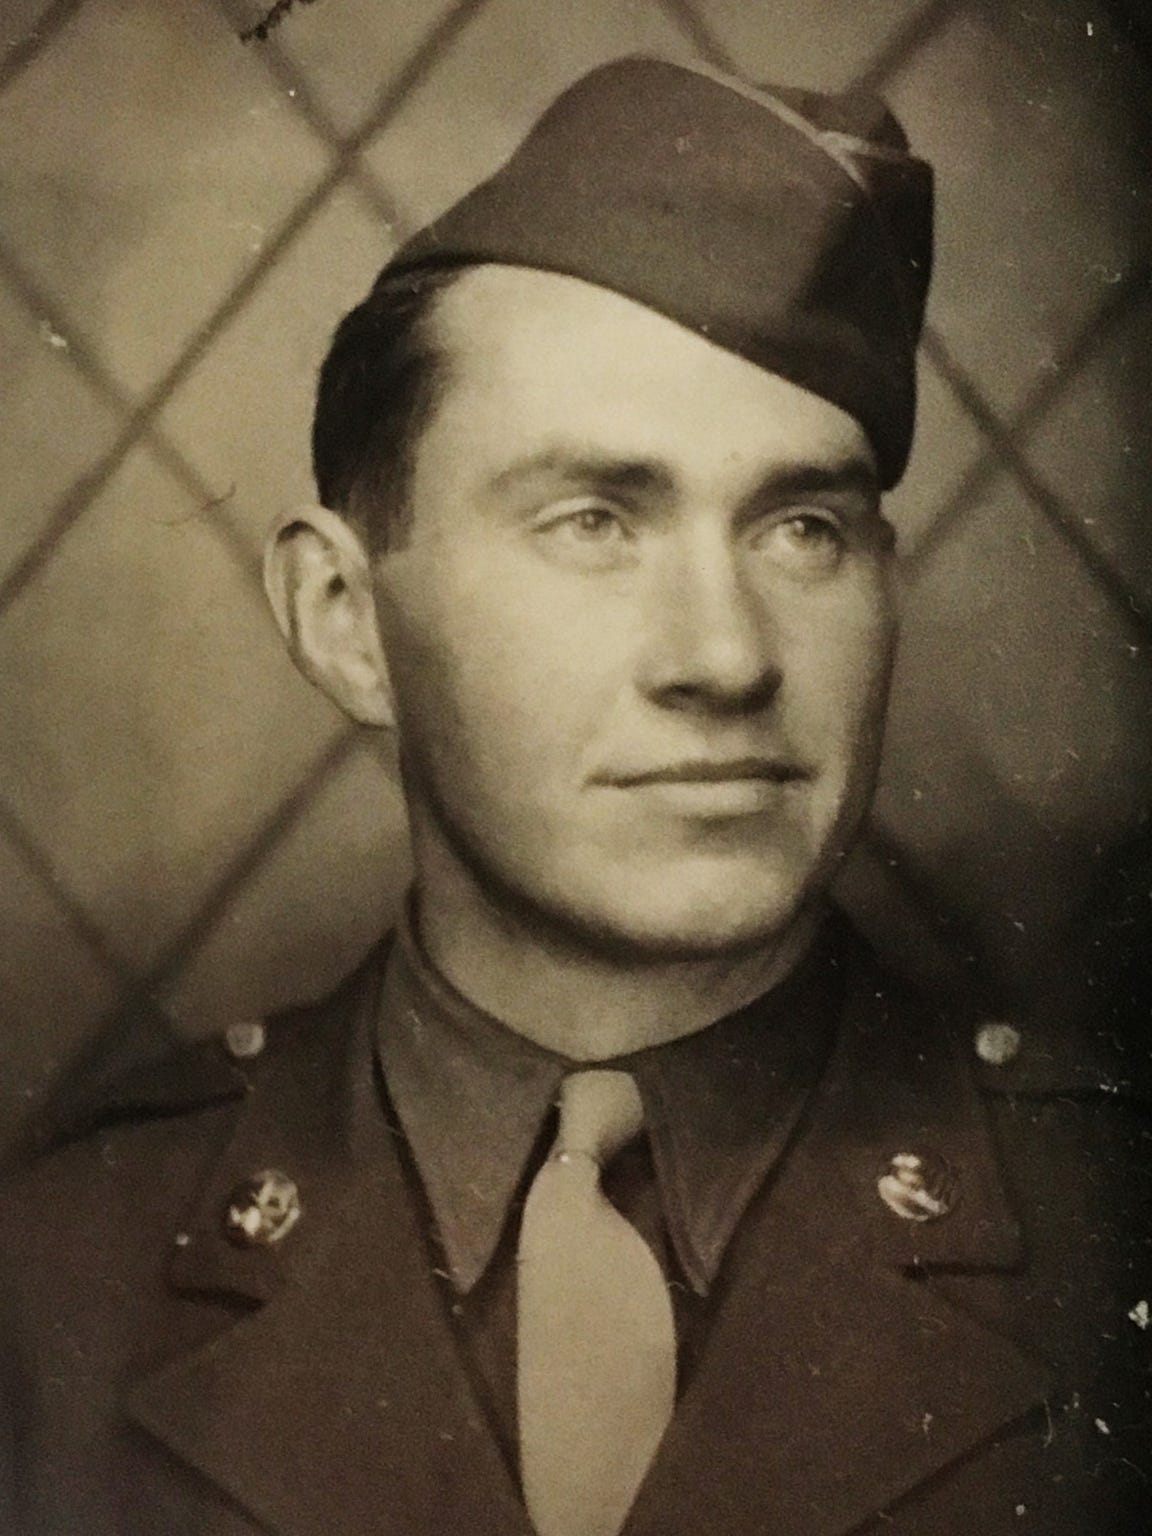 Mervin Rose was drafted into the Army during World War II, serving in the U.S. Army, 394th Signal Company Aviation from Nov. 3, 1942 to Dec. 15, 1944. He reached the rank of staff sergeant.